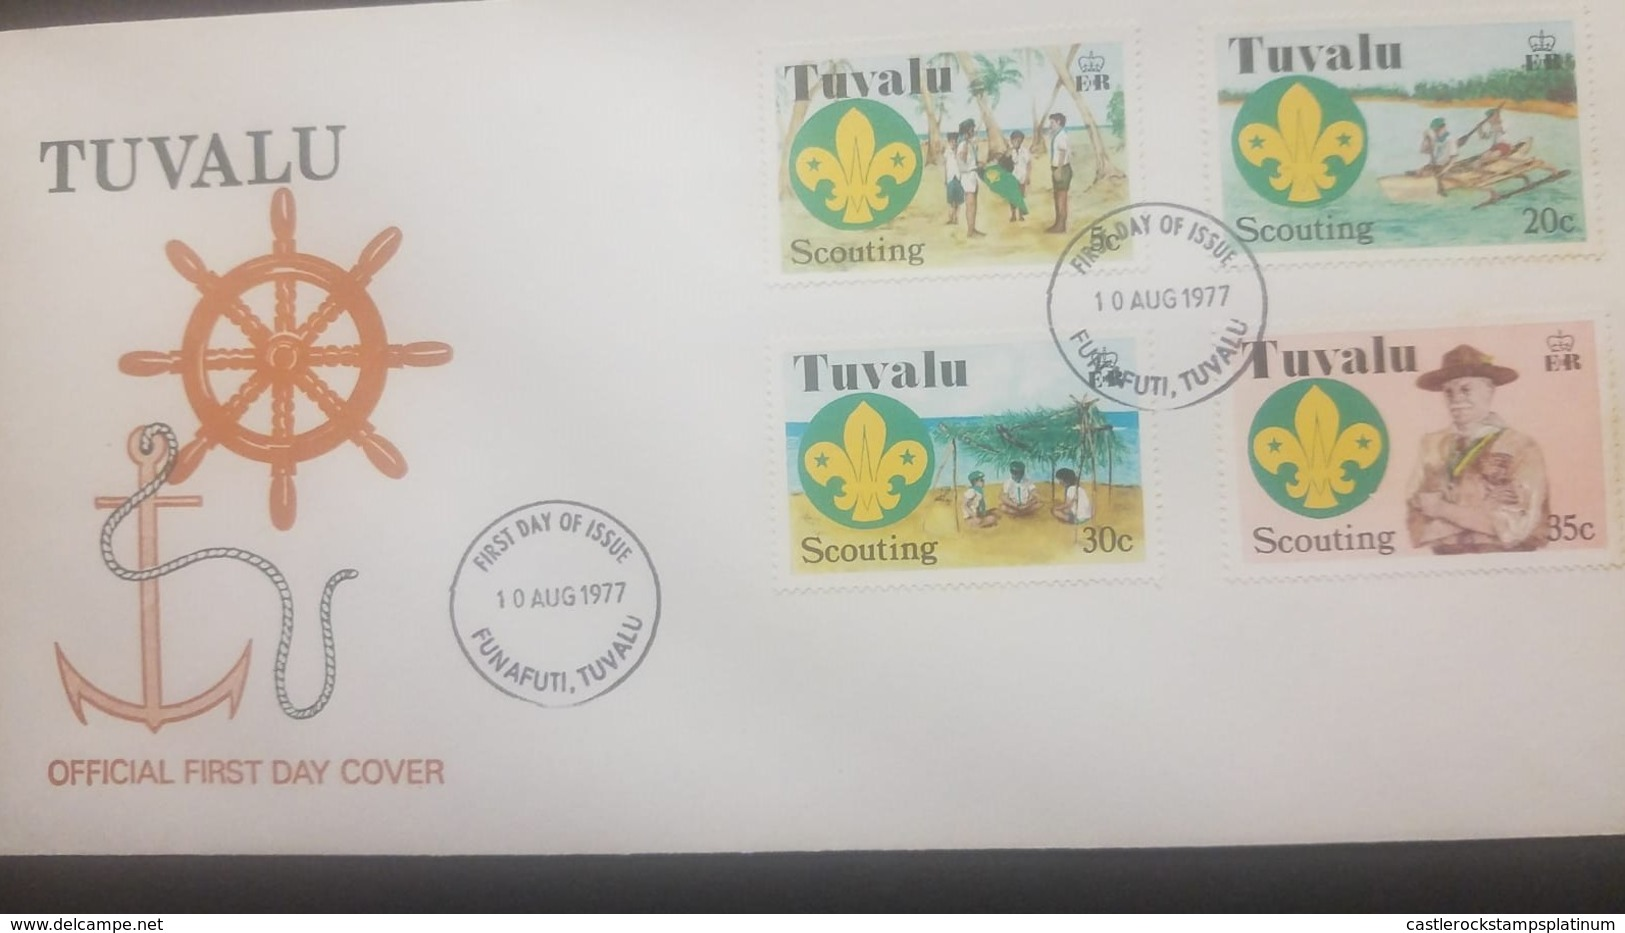 O) 1977 TUVALU, SCOUTS-LORD BADEN POWELL, SWEARING IN CEREMONY AND SCOUT EMBLEM-OUTRIGGER-CANOE-UNDER SUN SHELTER, FDC X - Tuvalu